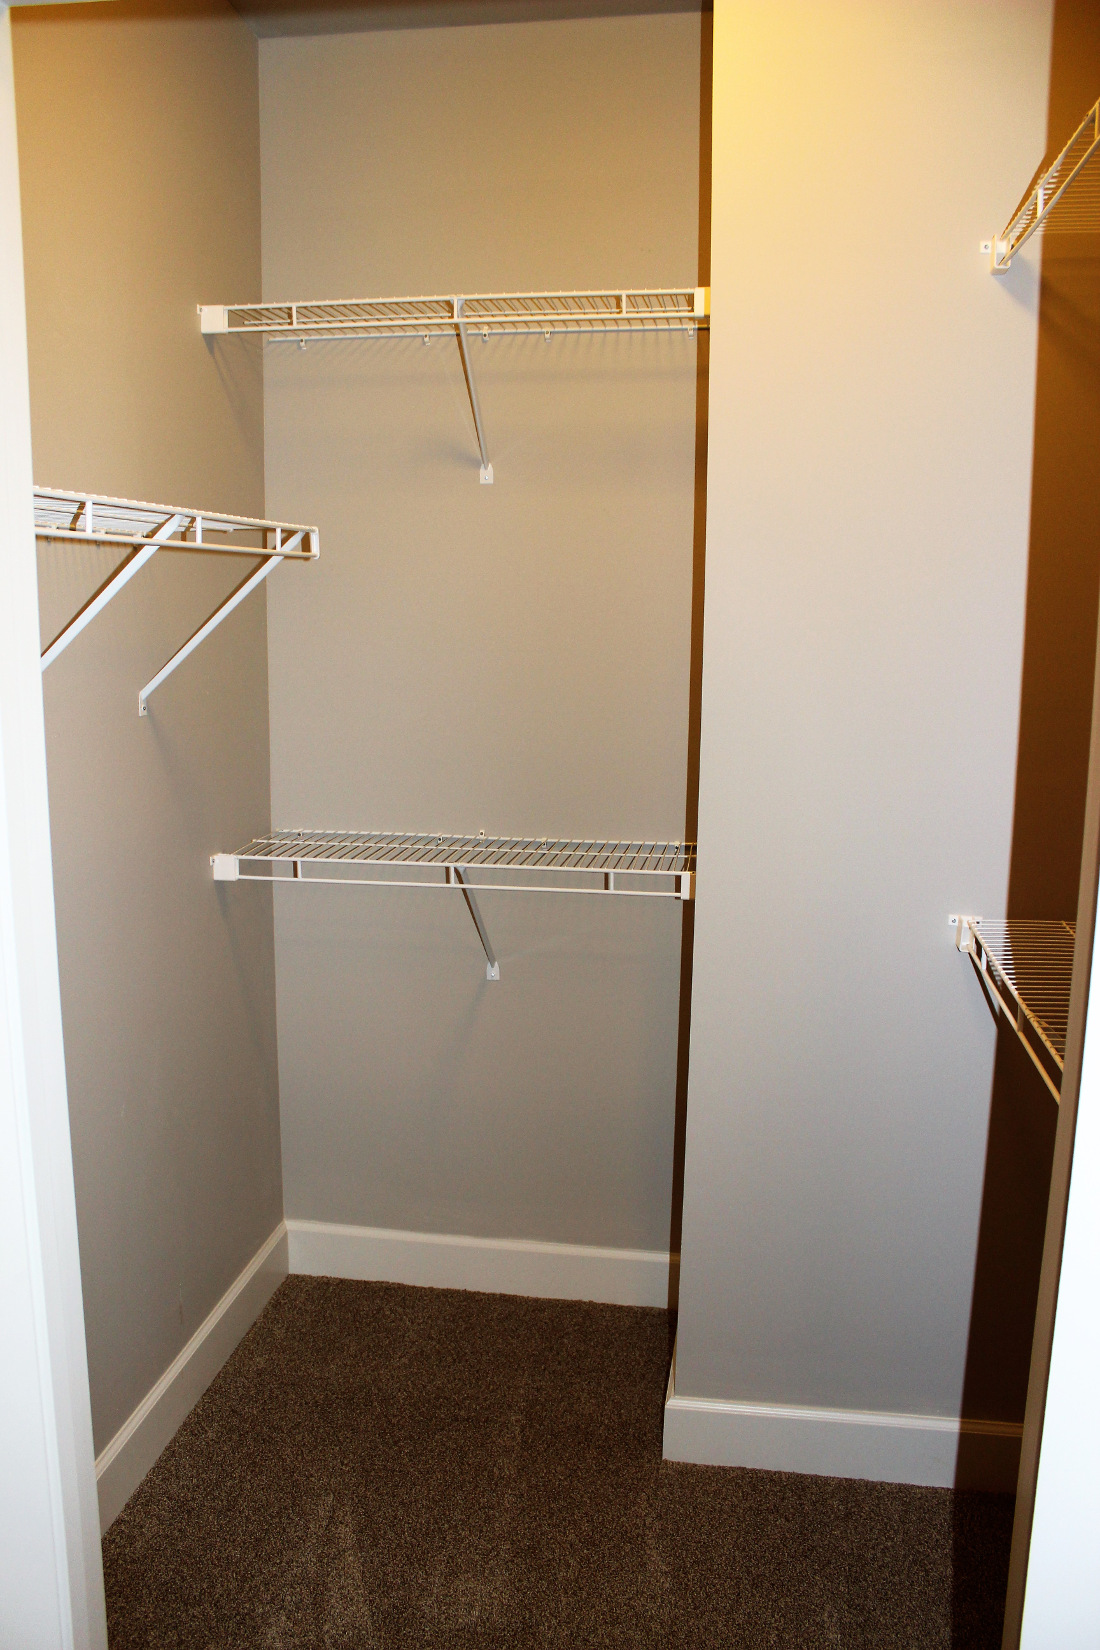 B2 Closet at the Vue at Creve Coeur Apartments in Creve Coeur, MO